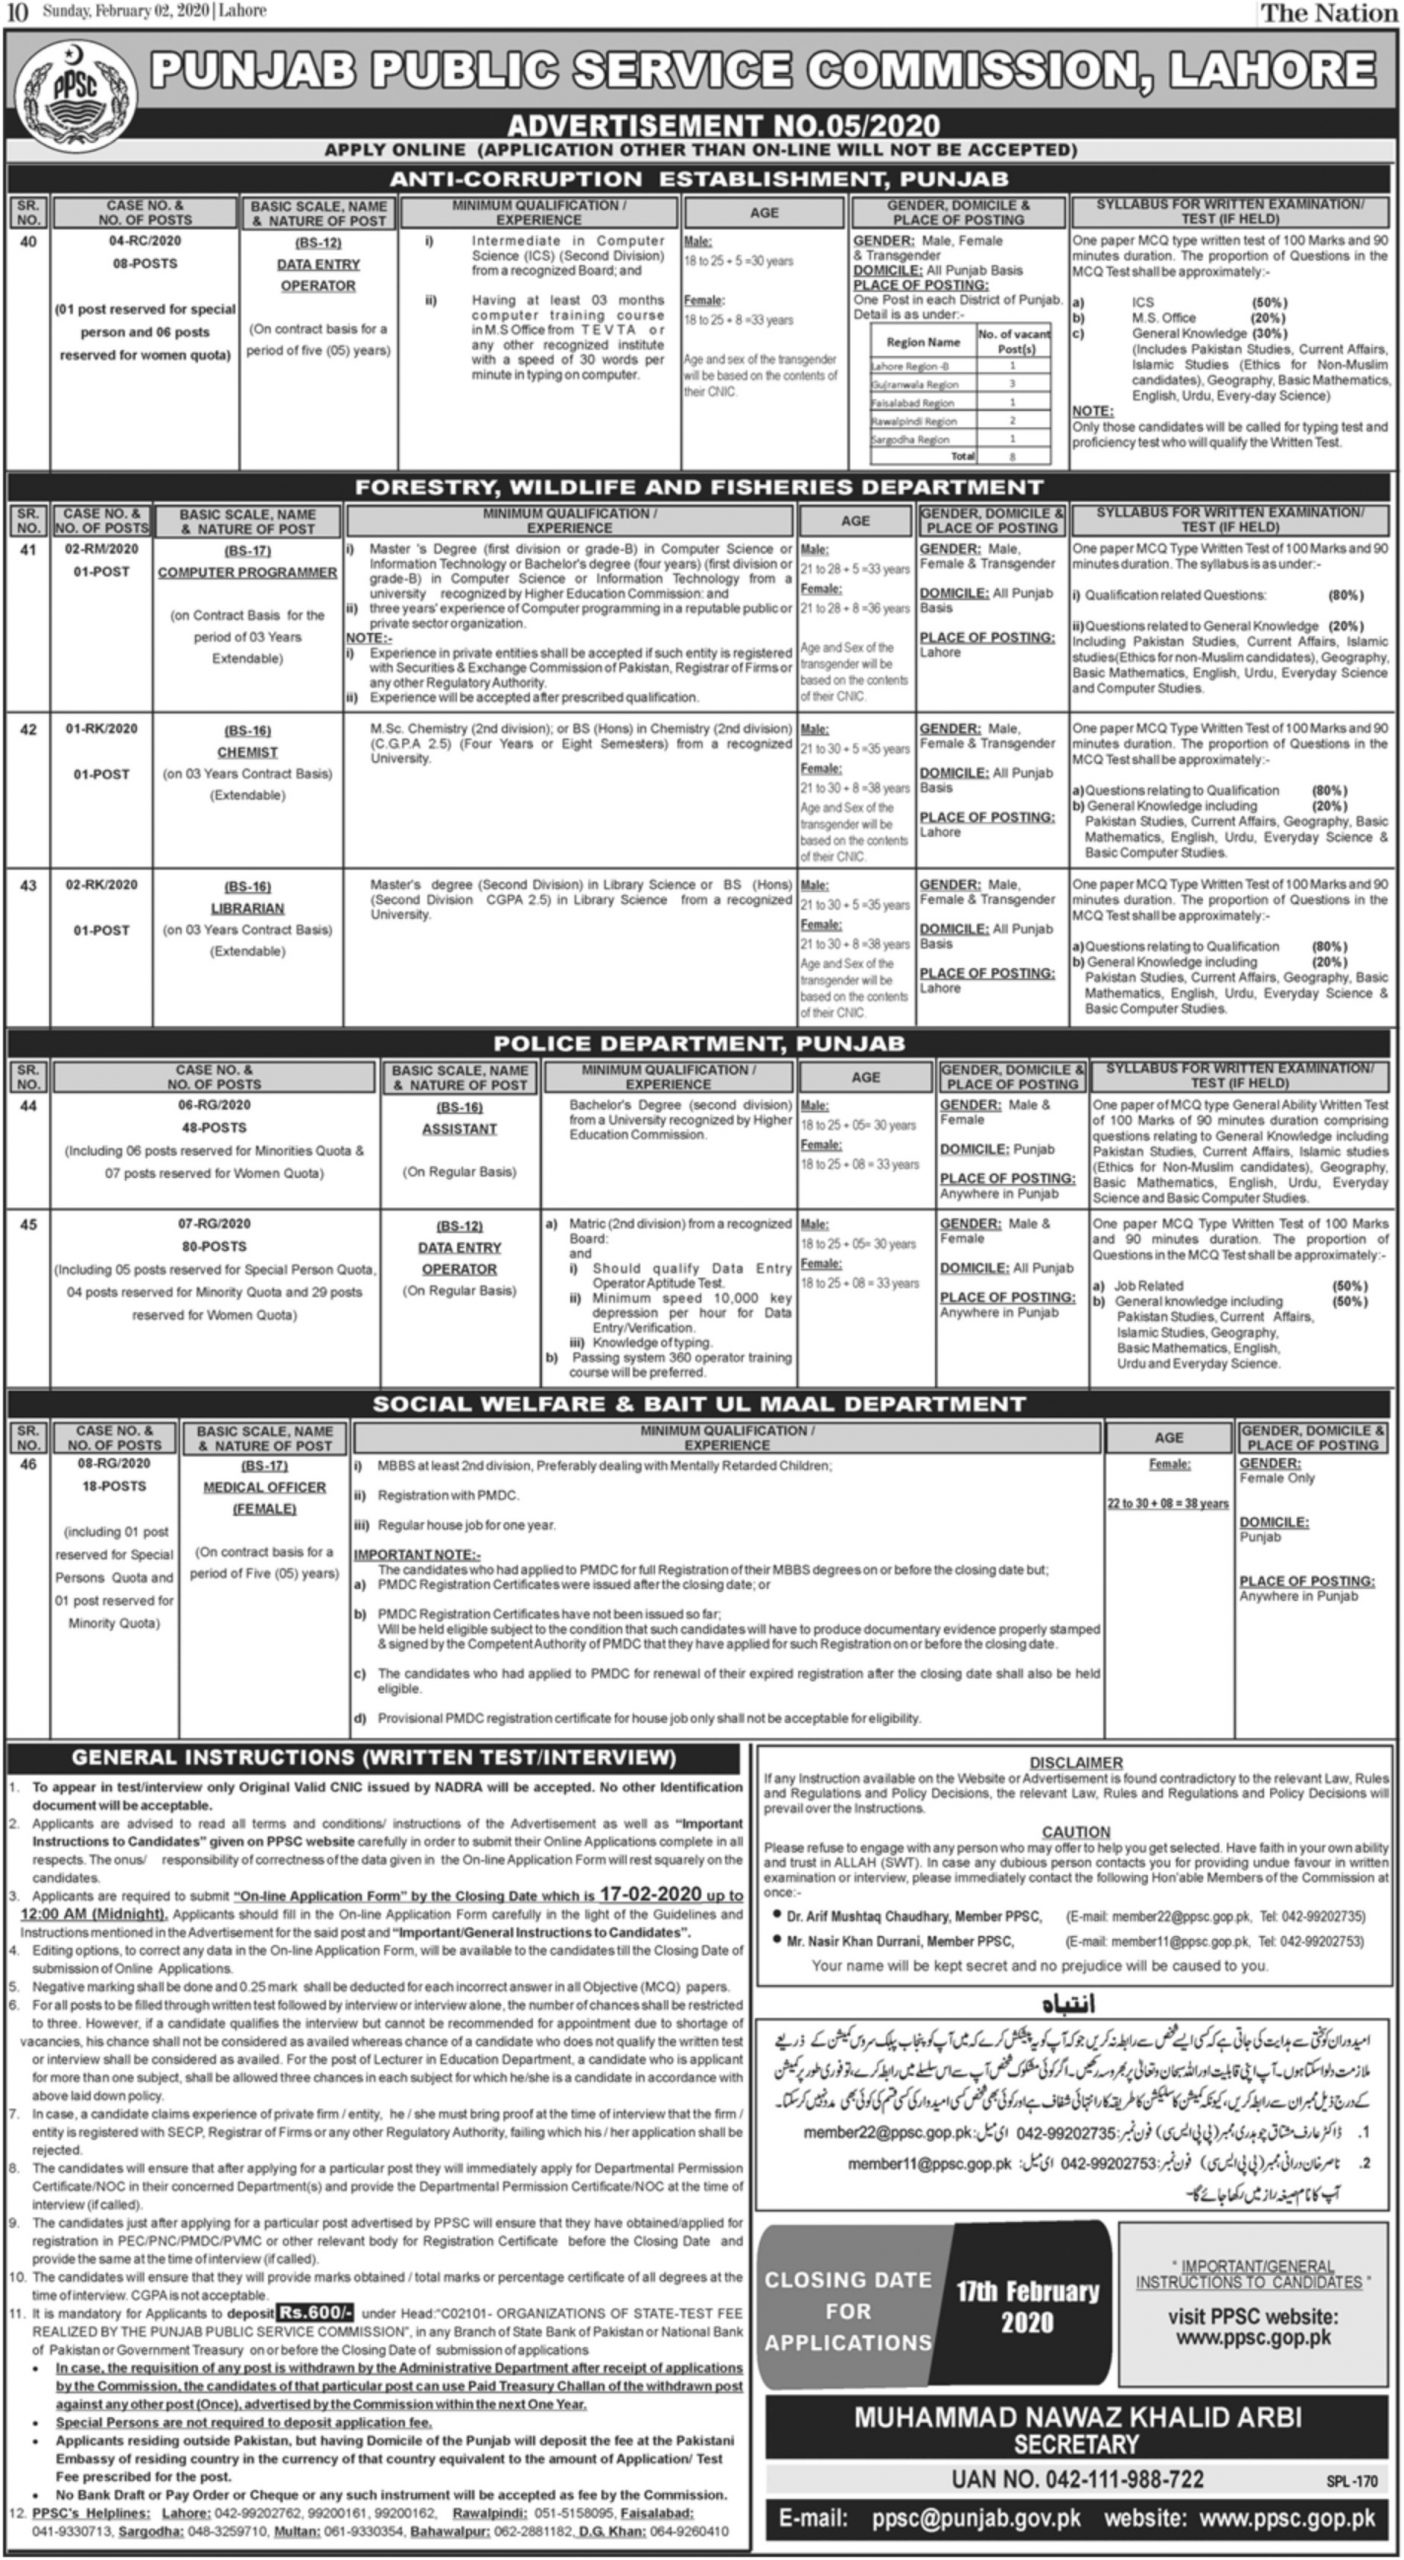 Careers at PPSC 2020 Punjab Officials Committee Lahore